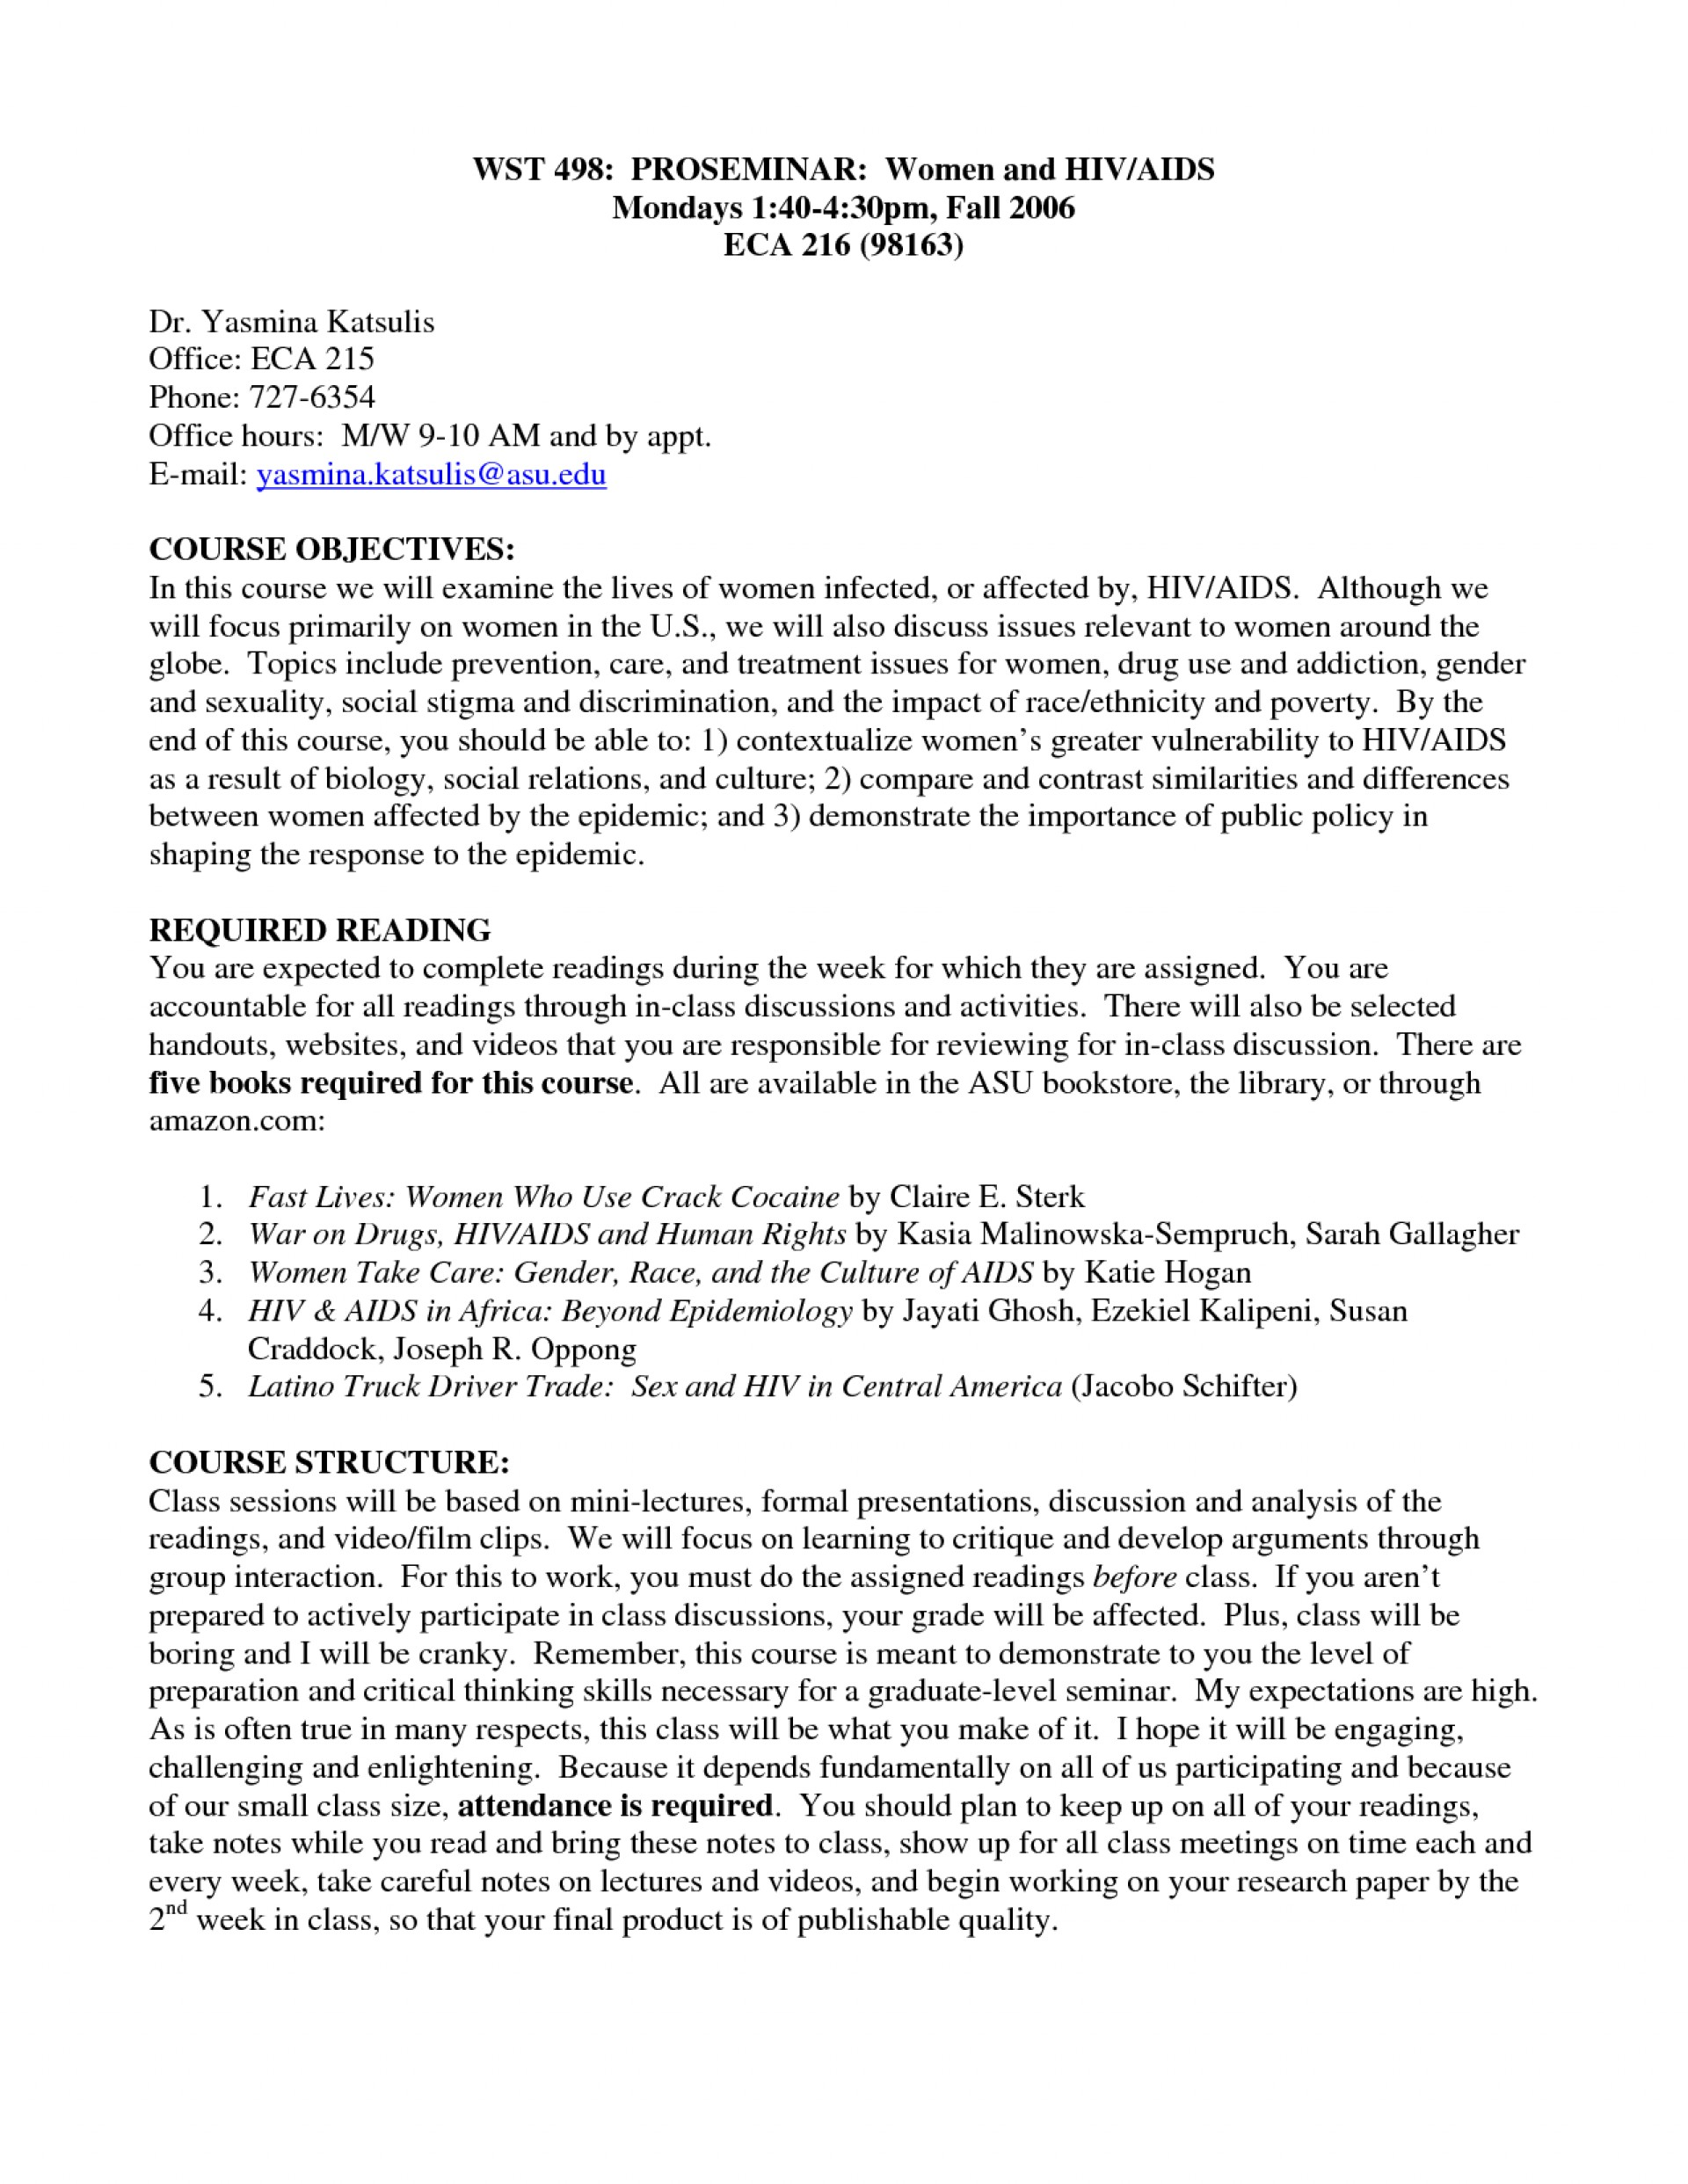 002 Research Paper Modest Proposal Topics For Essay Resume Boat Jeremyeaton Co Formidable A 1920